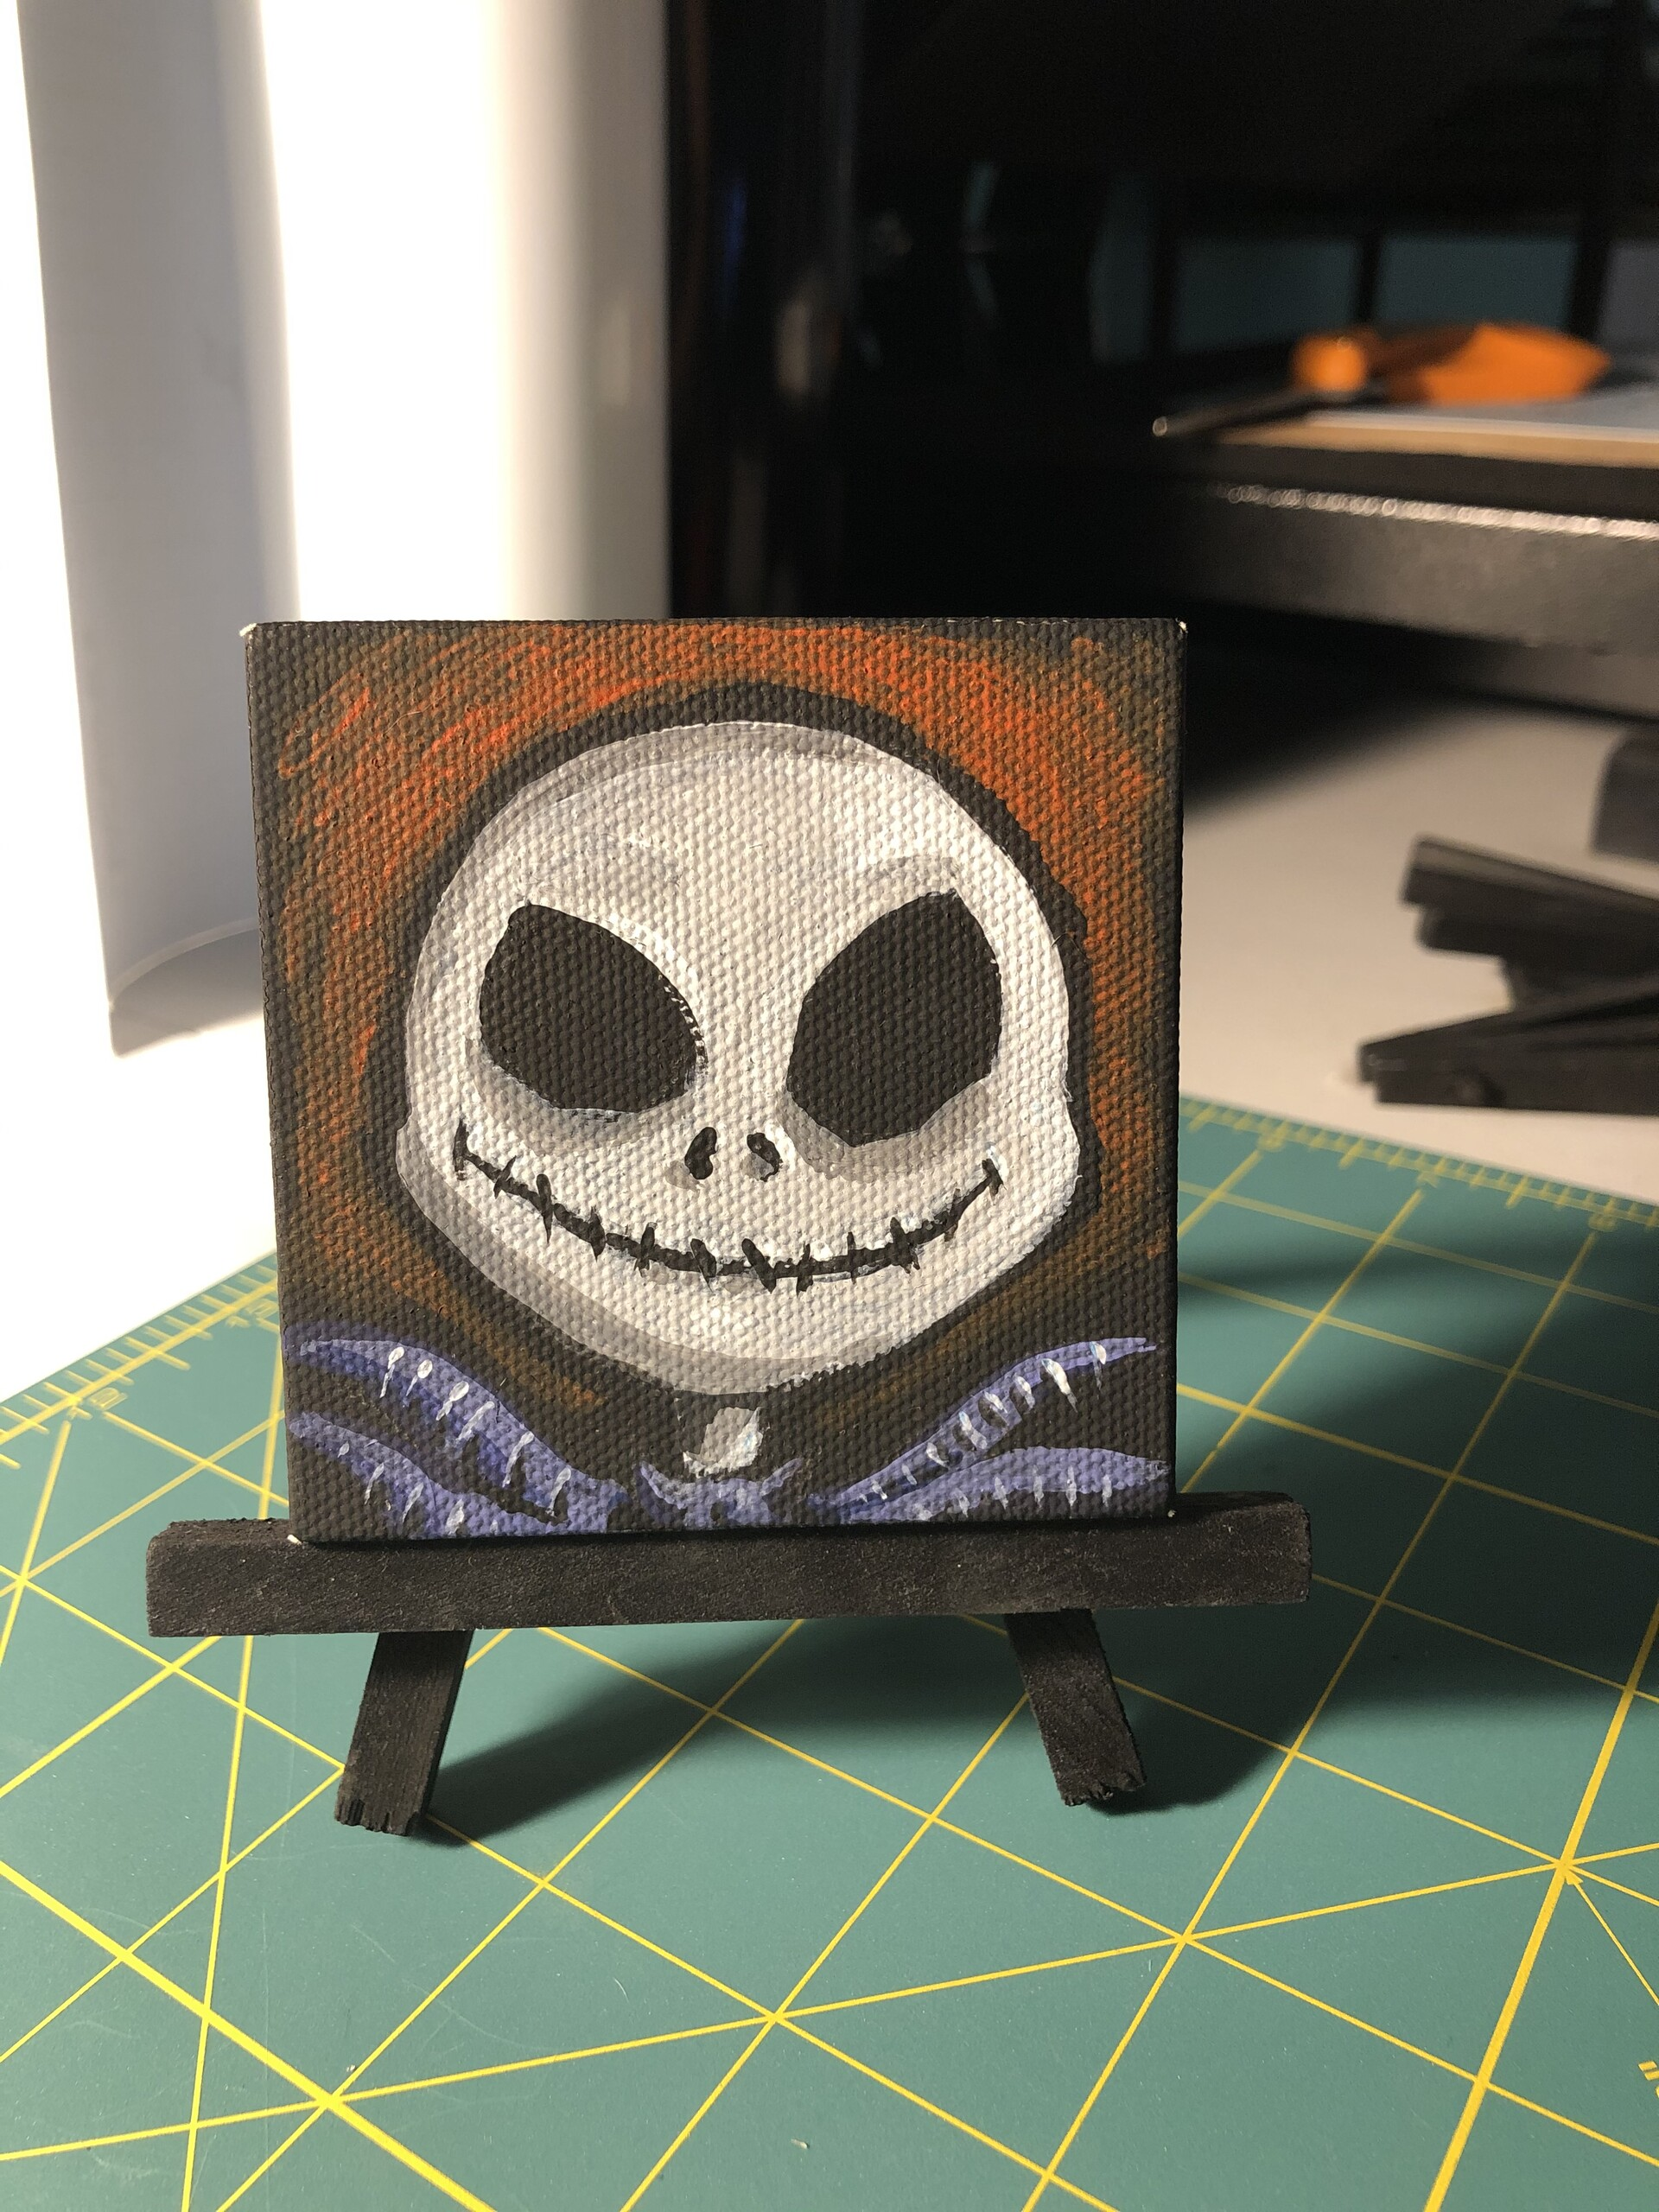 Nightmare Before Christmas, Jack. Acrylic paintings on black mini canvas, 3x3 in.